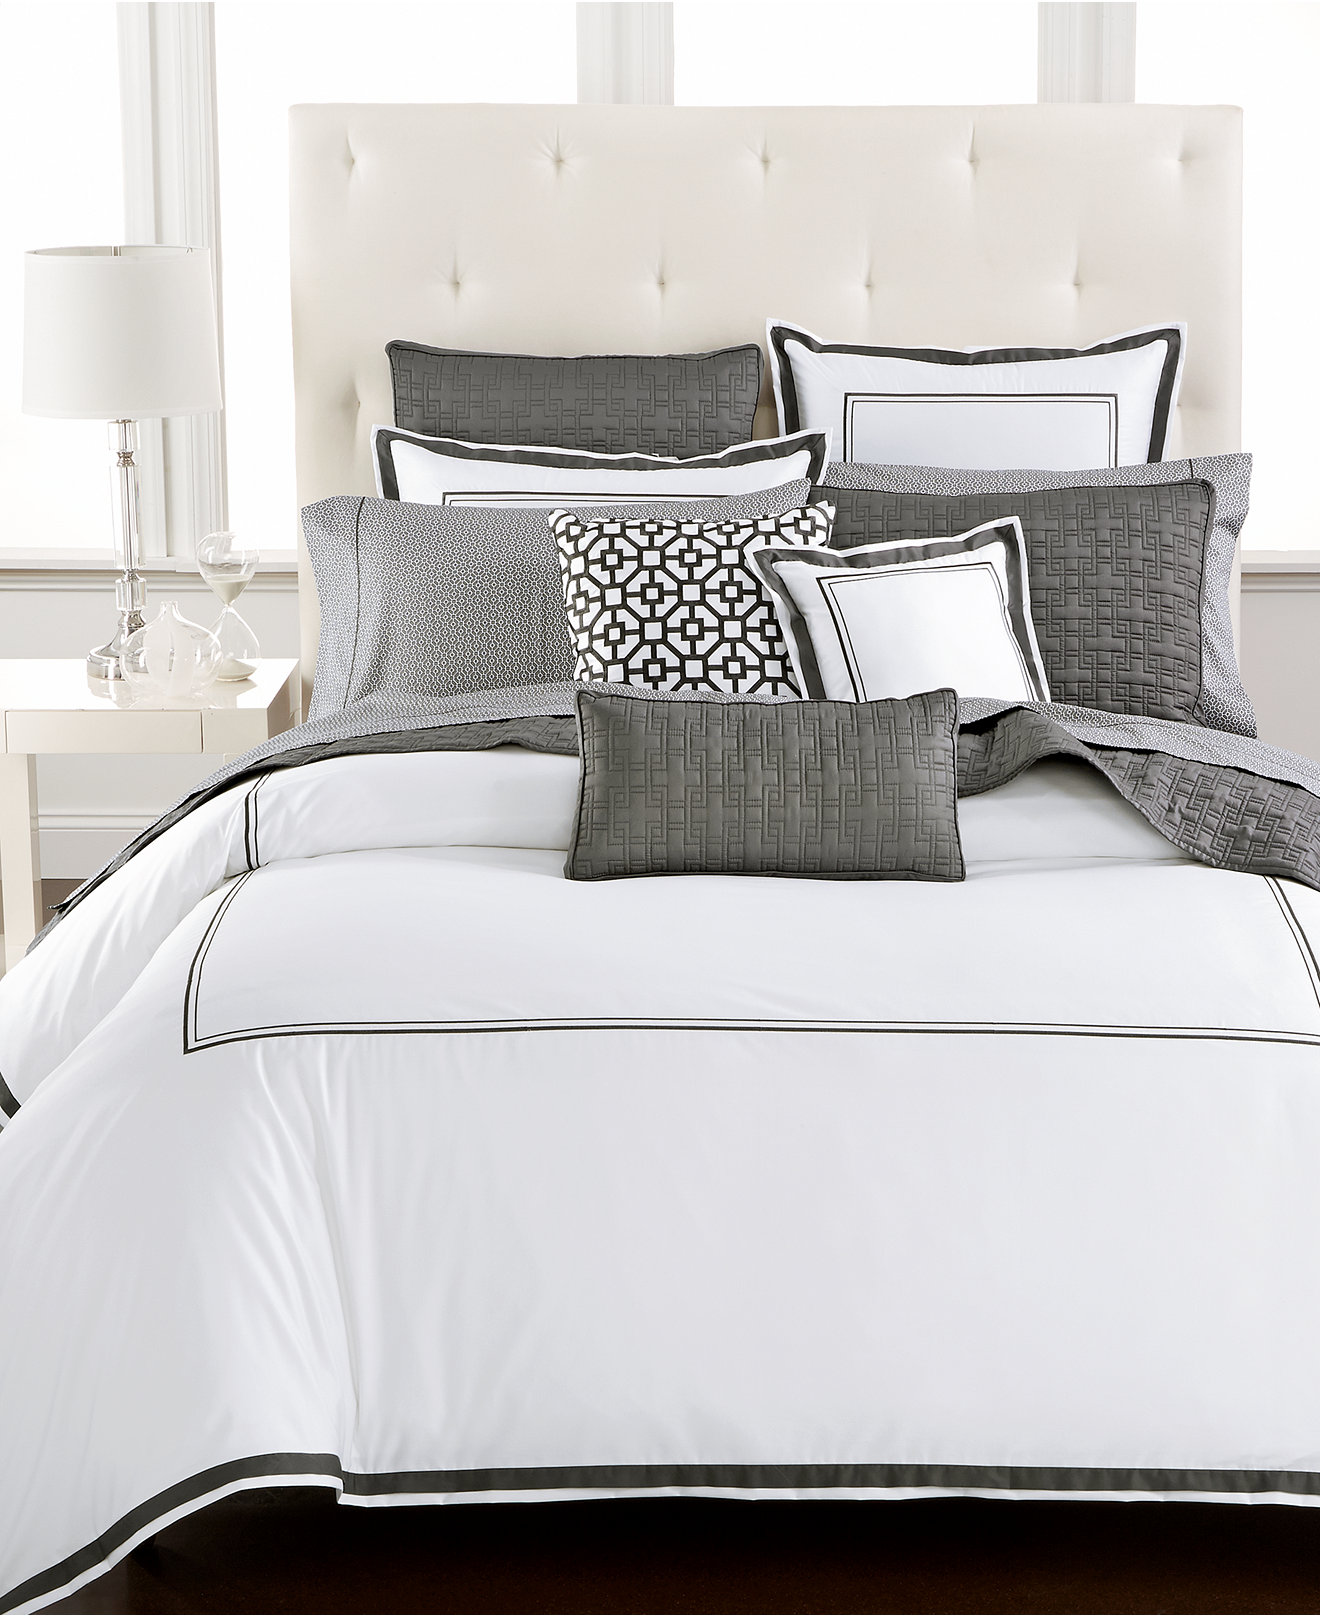 Dazzling donna karan bedding with Cushion and pillows also beautiful duvet cover and sidetable and luxury wall paint color